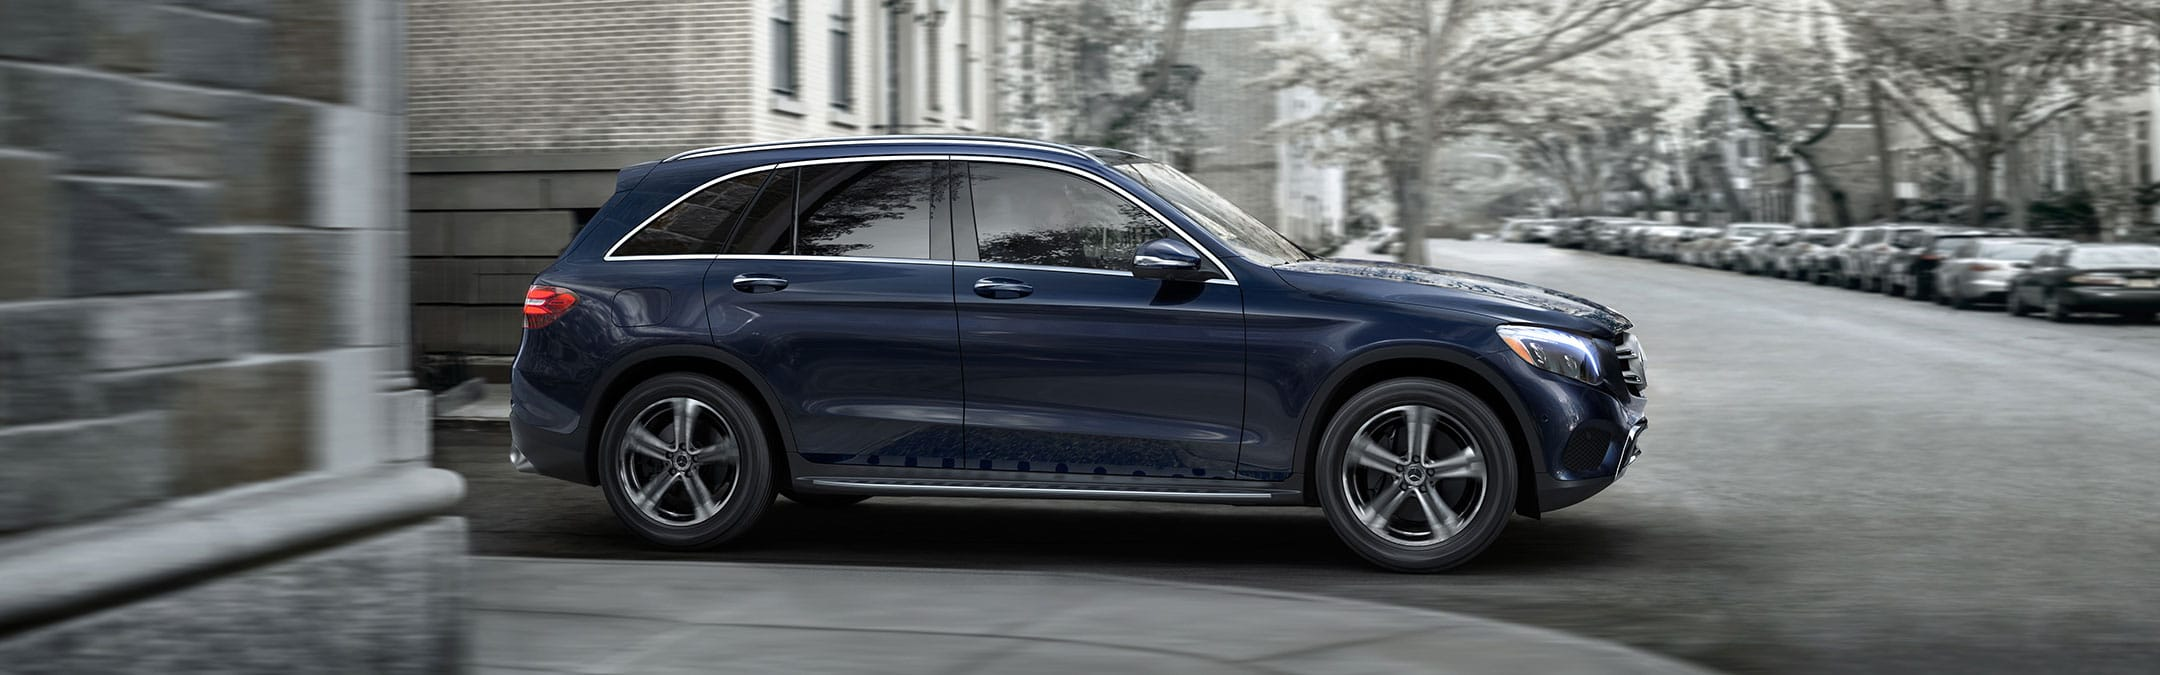 Mercedes Benz Luxury Crossovers Perfect for 2019